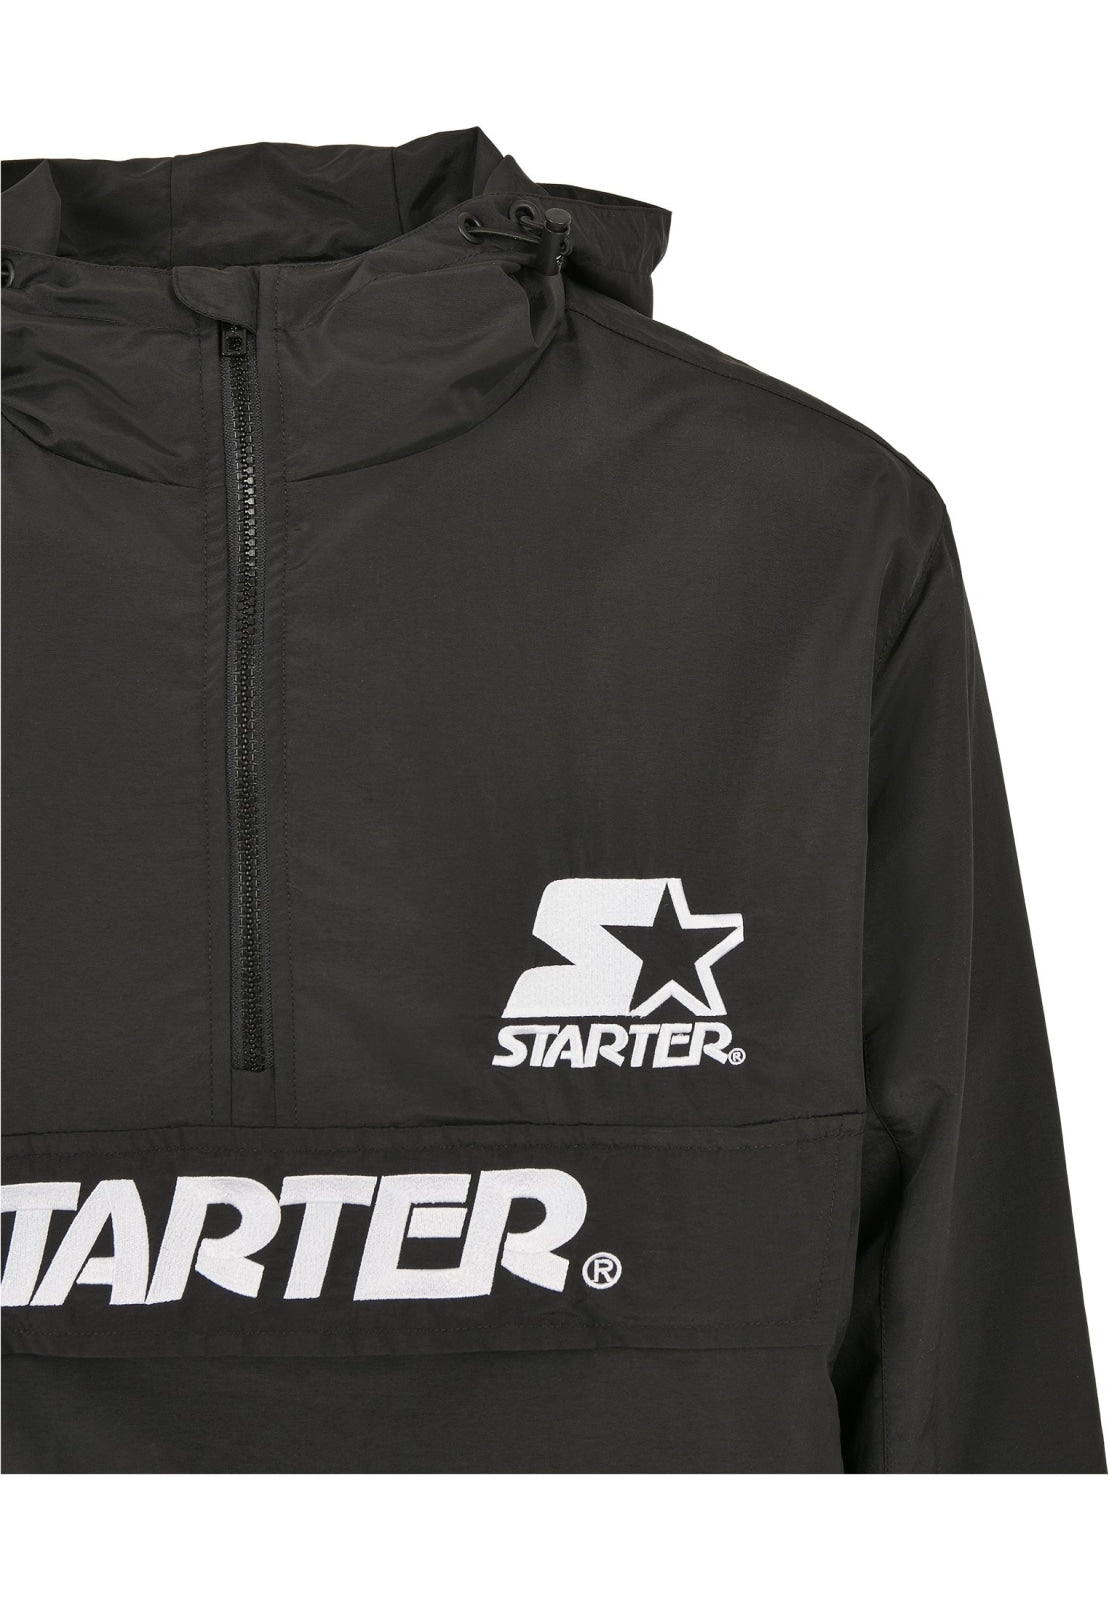 Starter The Classic Logo Windbreaker Jacket Starter